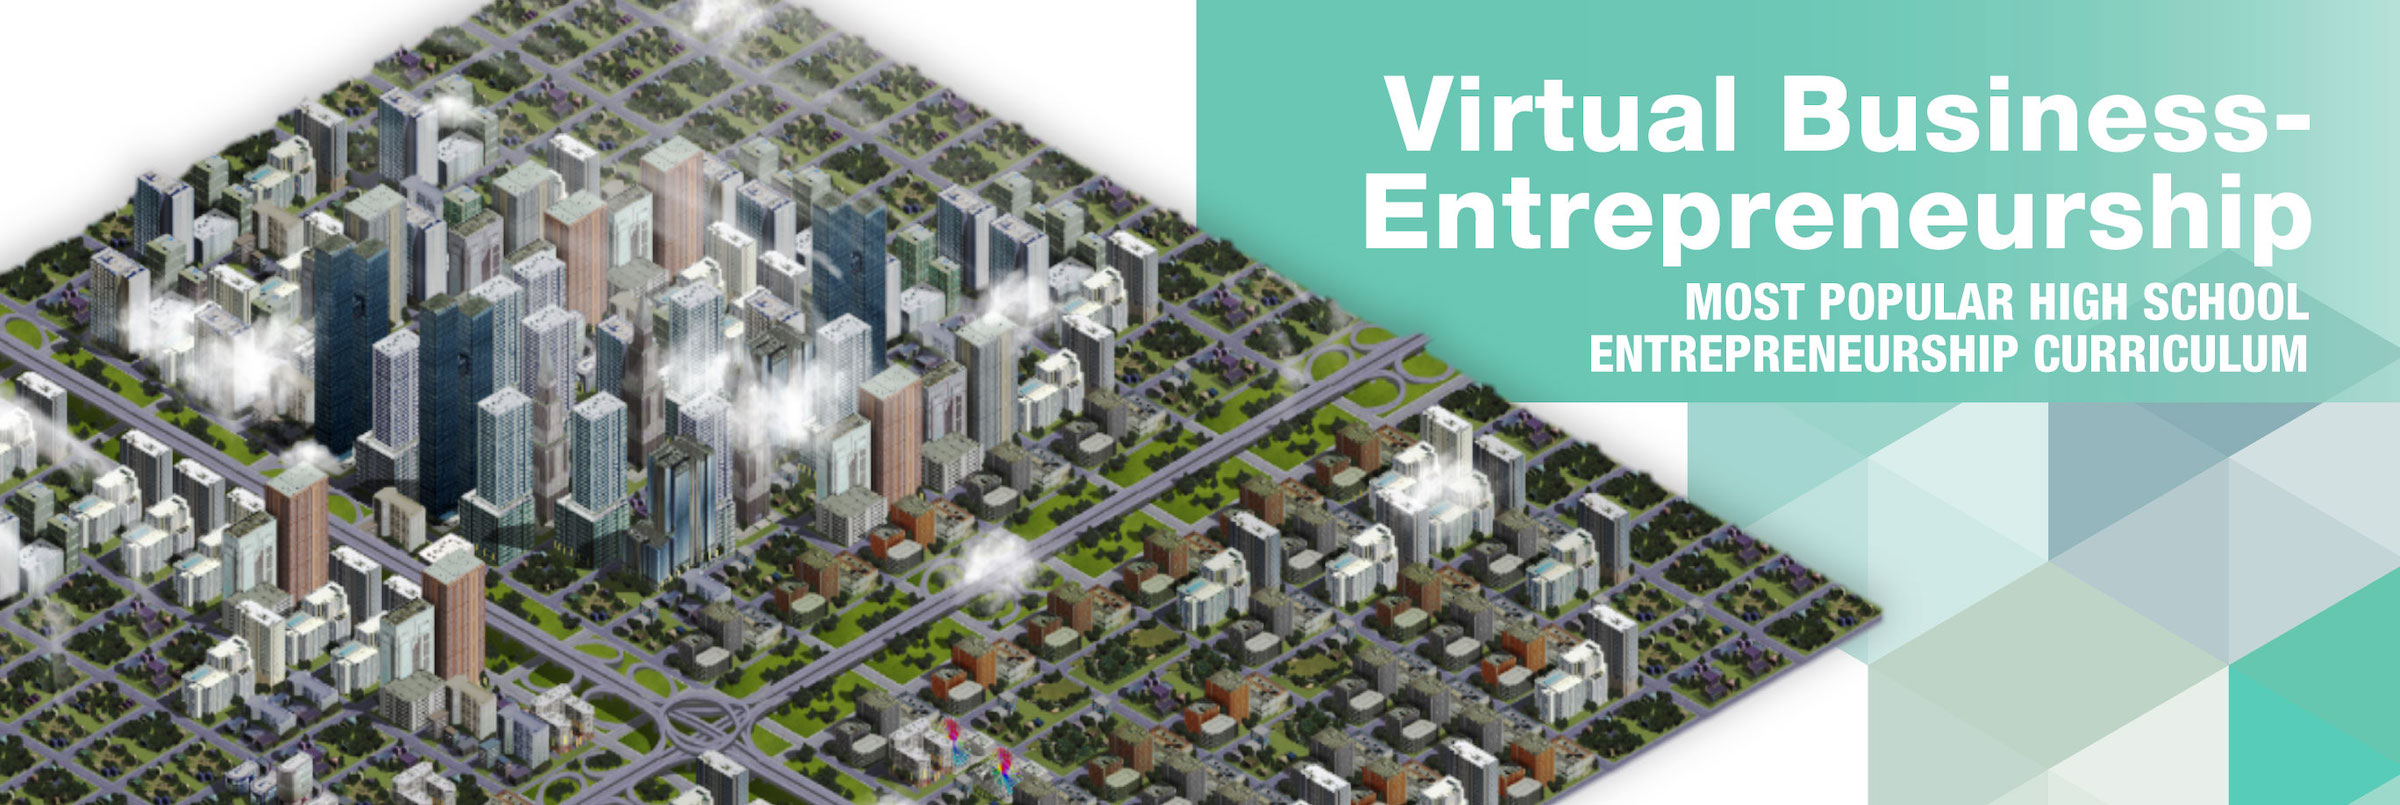 Virtual Business Entrepreneurship - entrepreneurship curriculum for teaching high school.